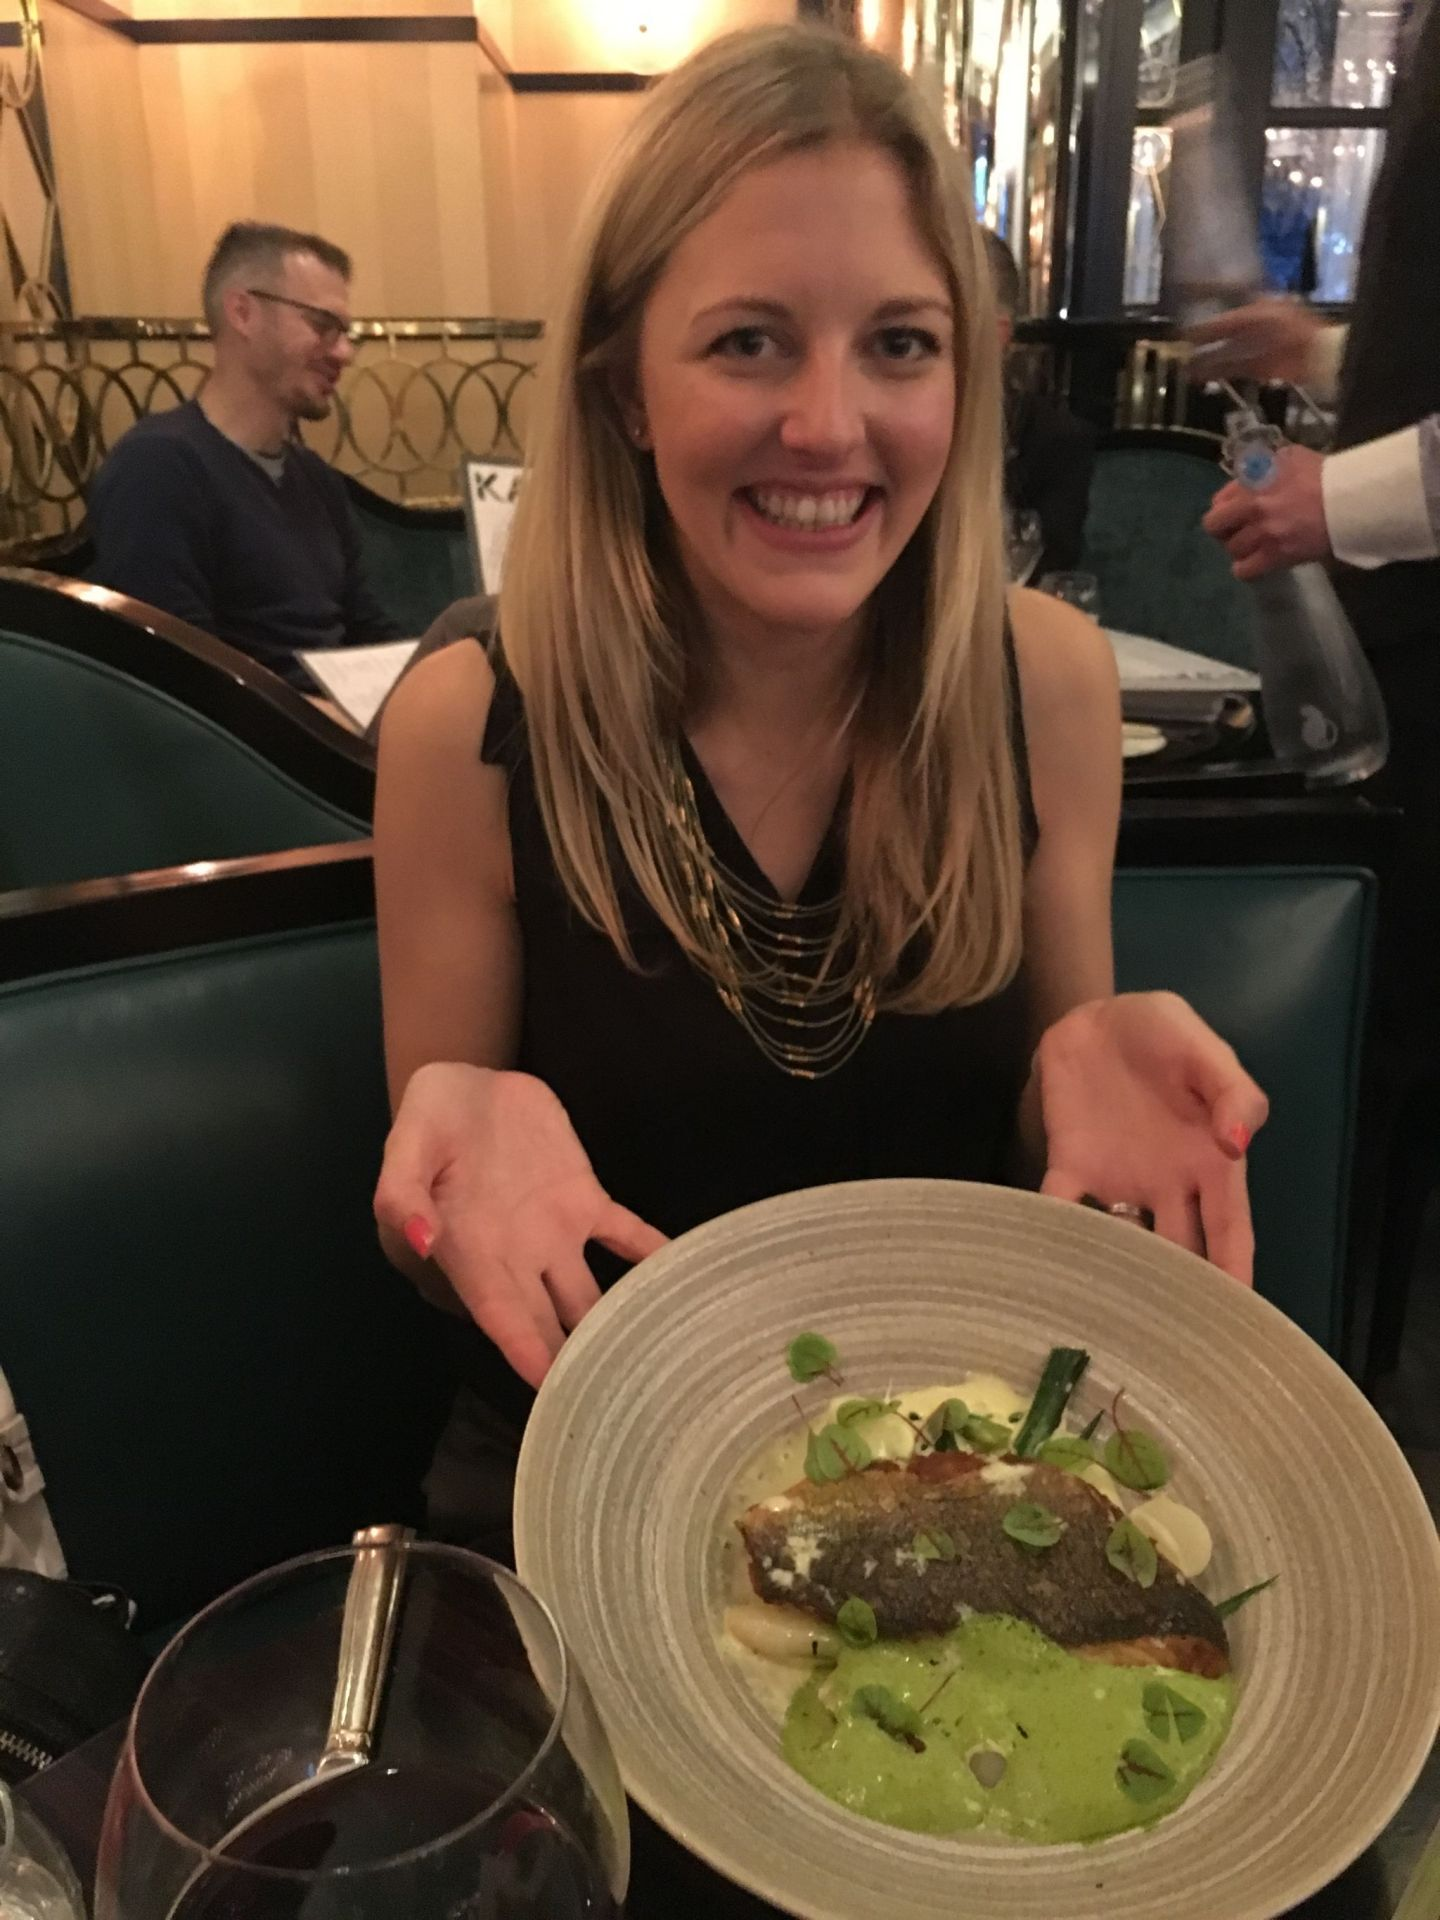 Top tips: How to fine dine for less in London